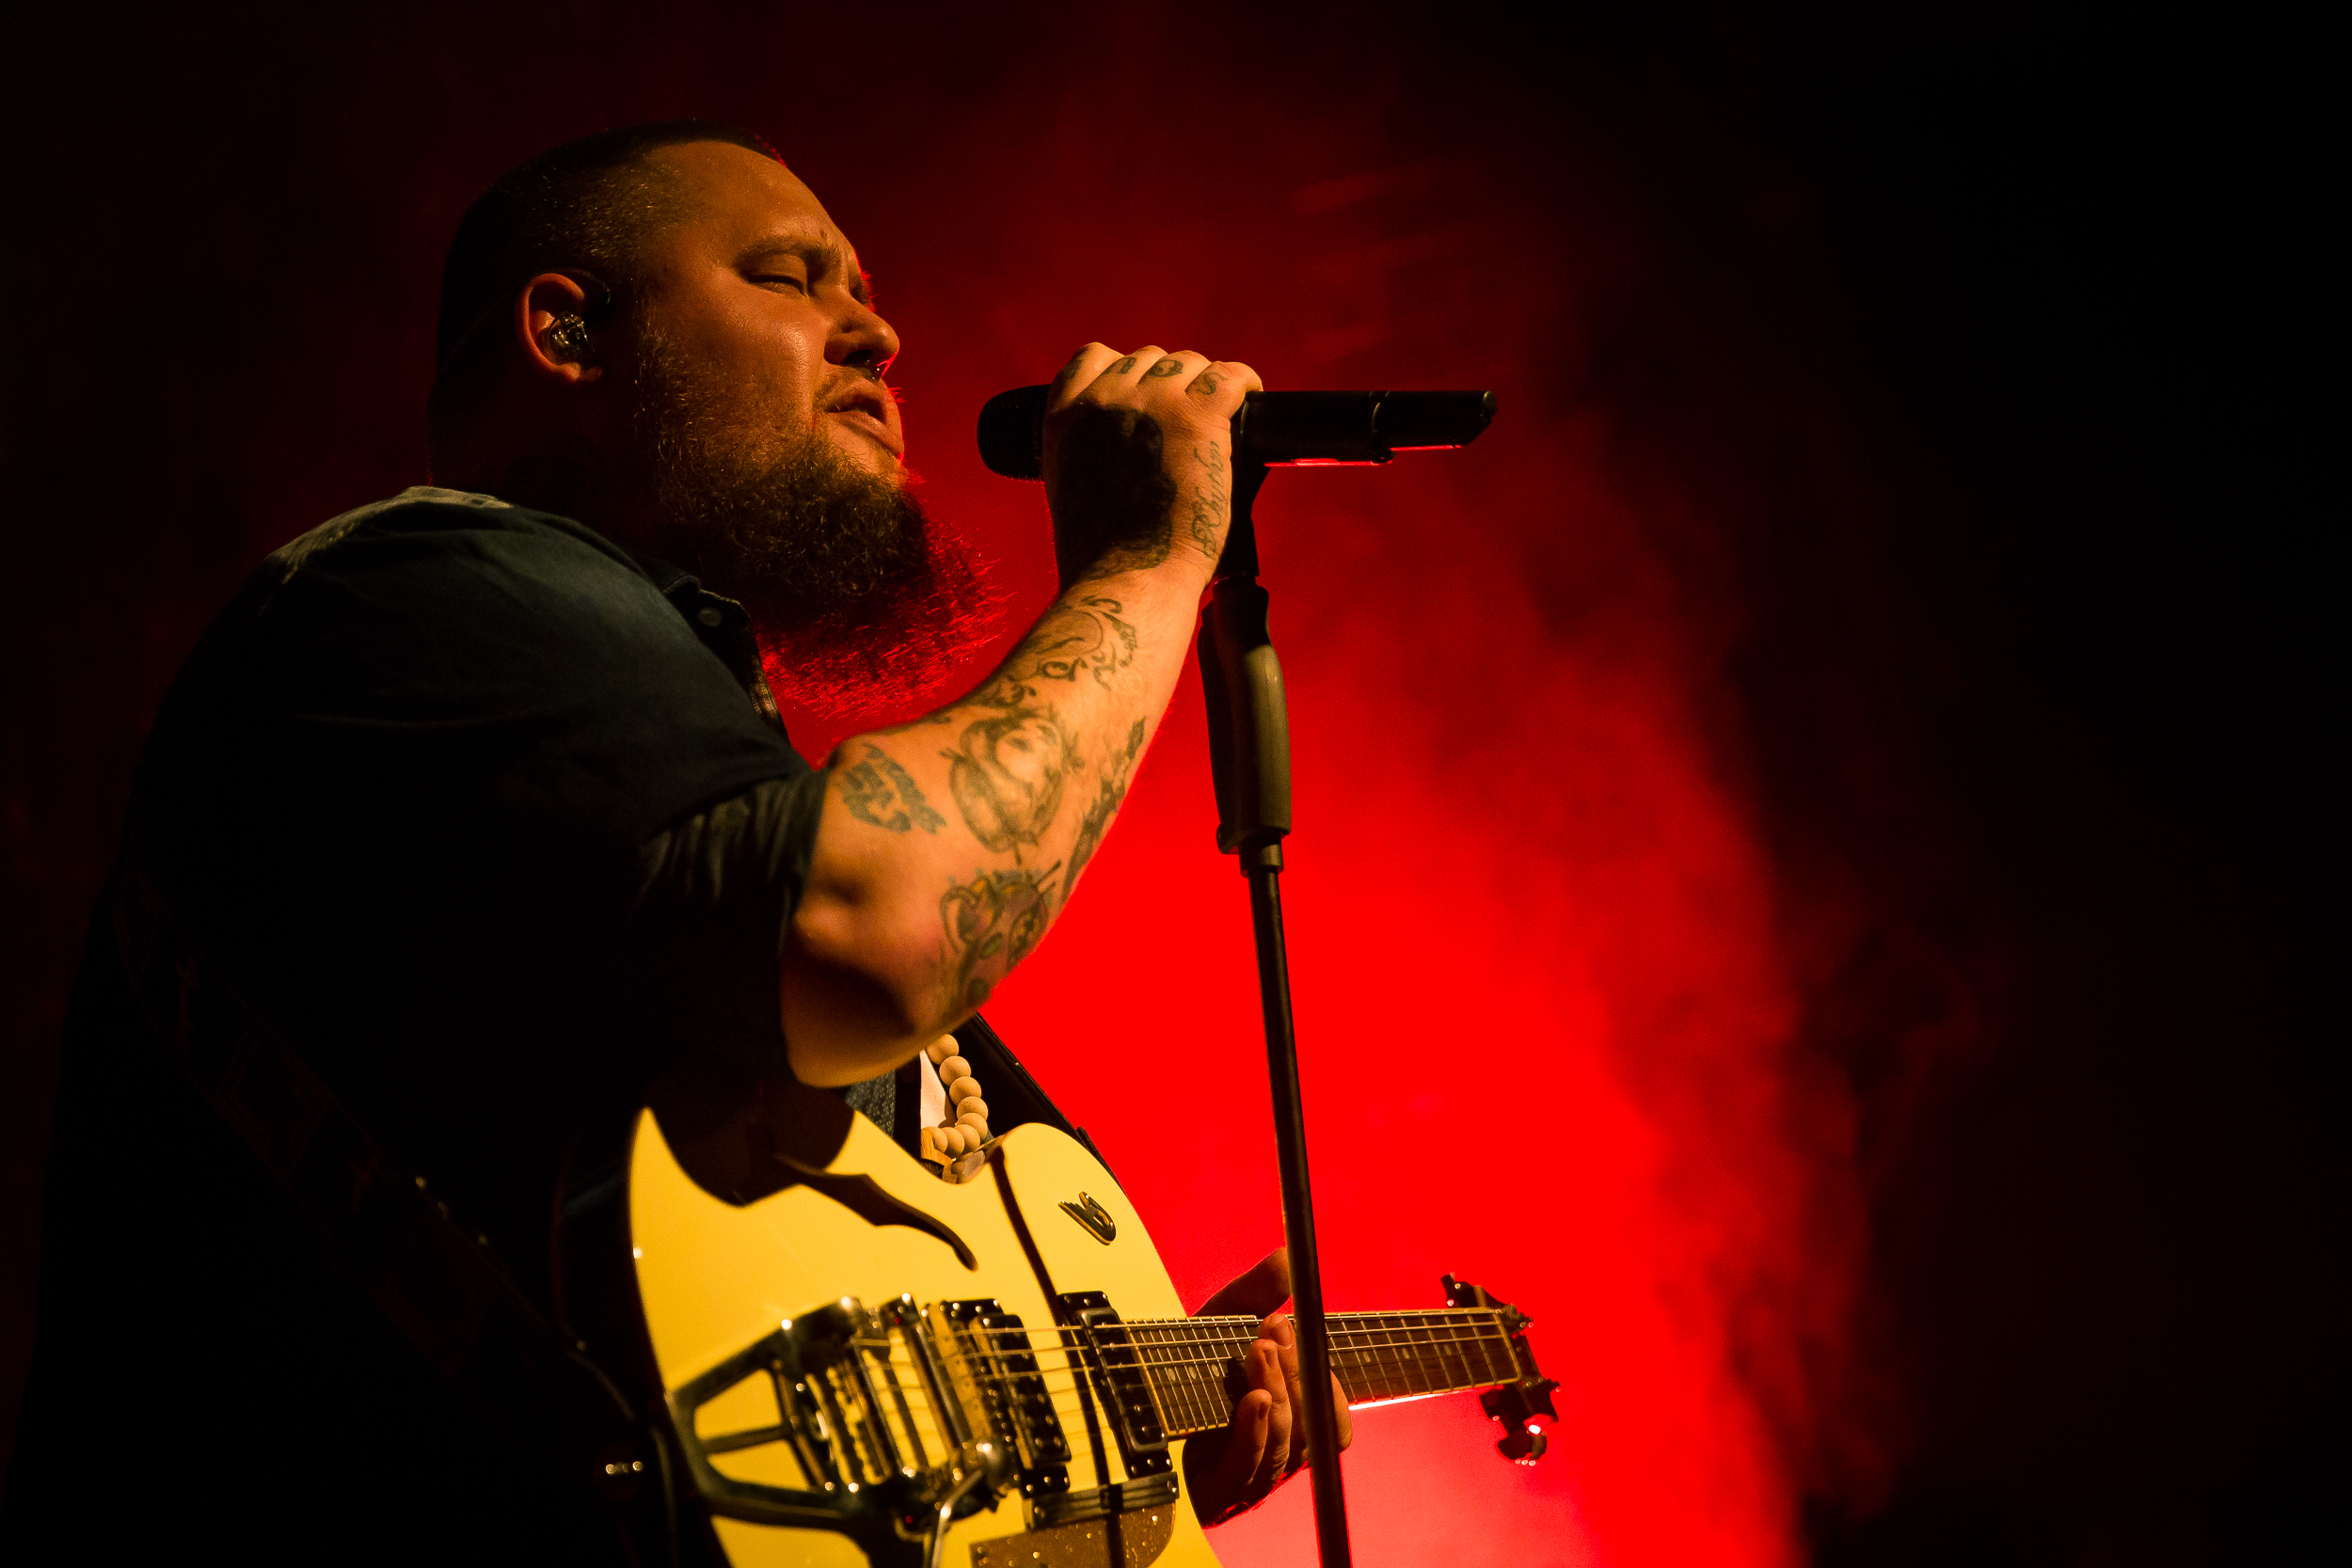 Rag N' Bone Man at Parkteatret, Oslo